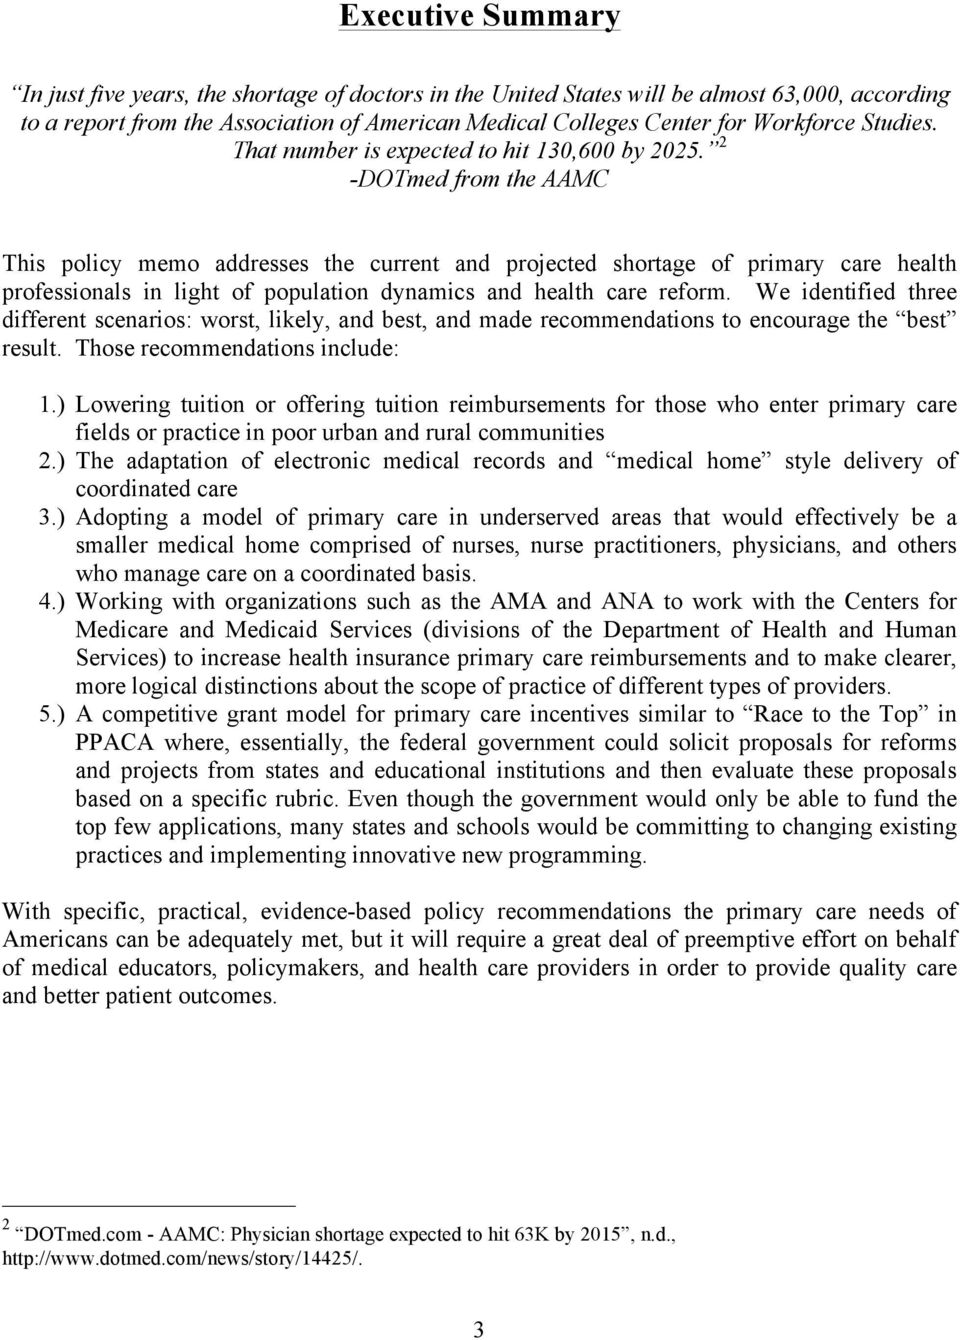 2 -DOTmed from the AAMC This policy memo addresses the current and projected shortage of primary care health professionals in light of population dynamics and health care reform.